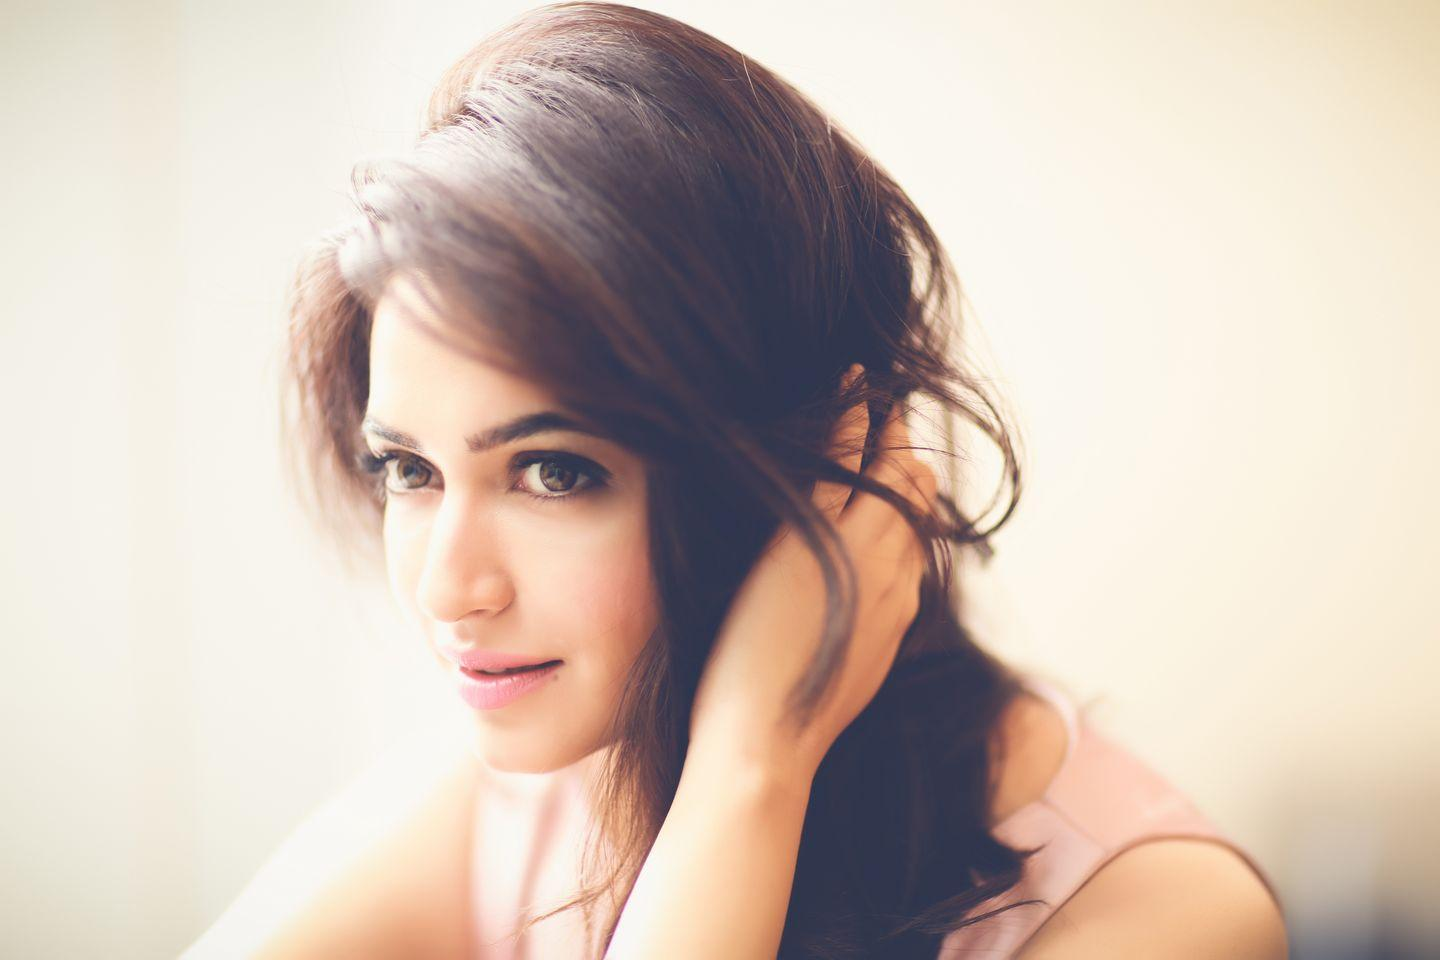 Cute Kriti Kharbanda HD wallpaper for download